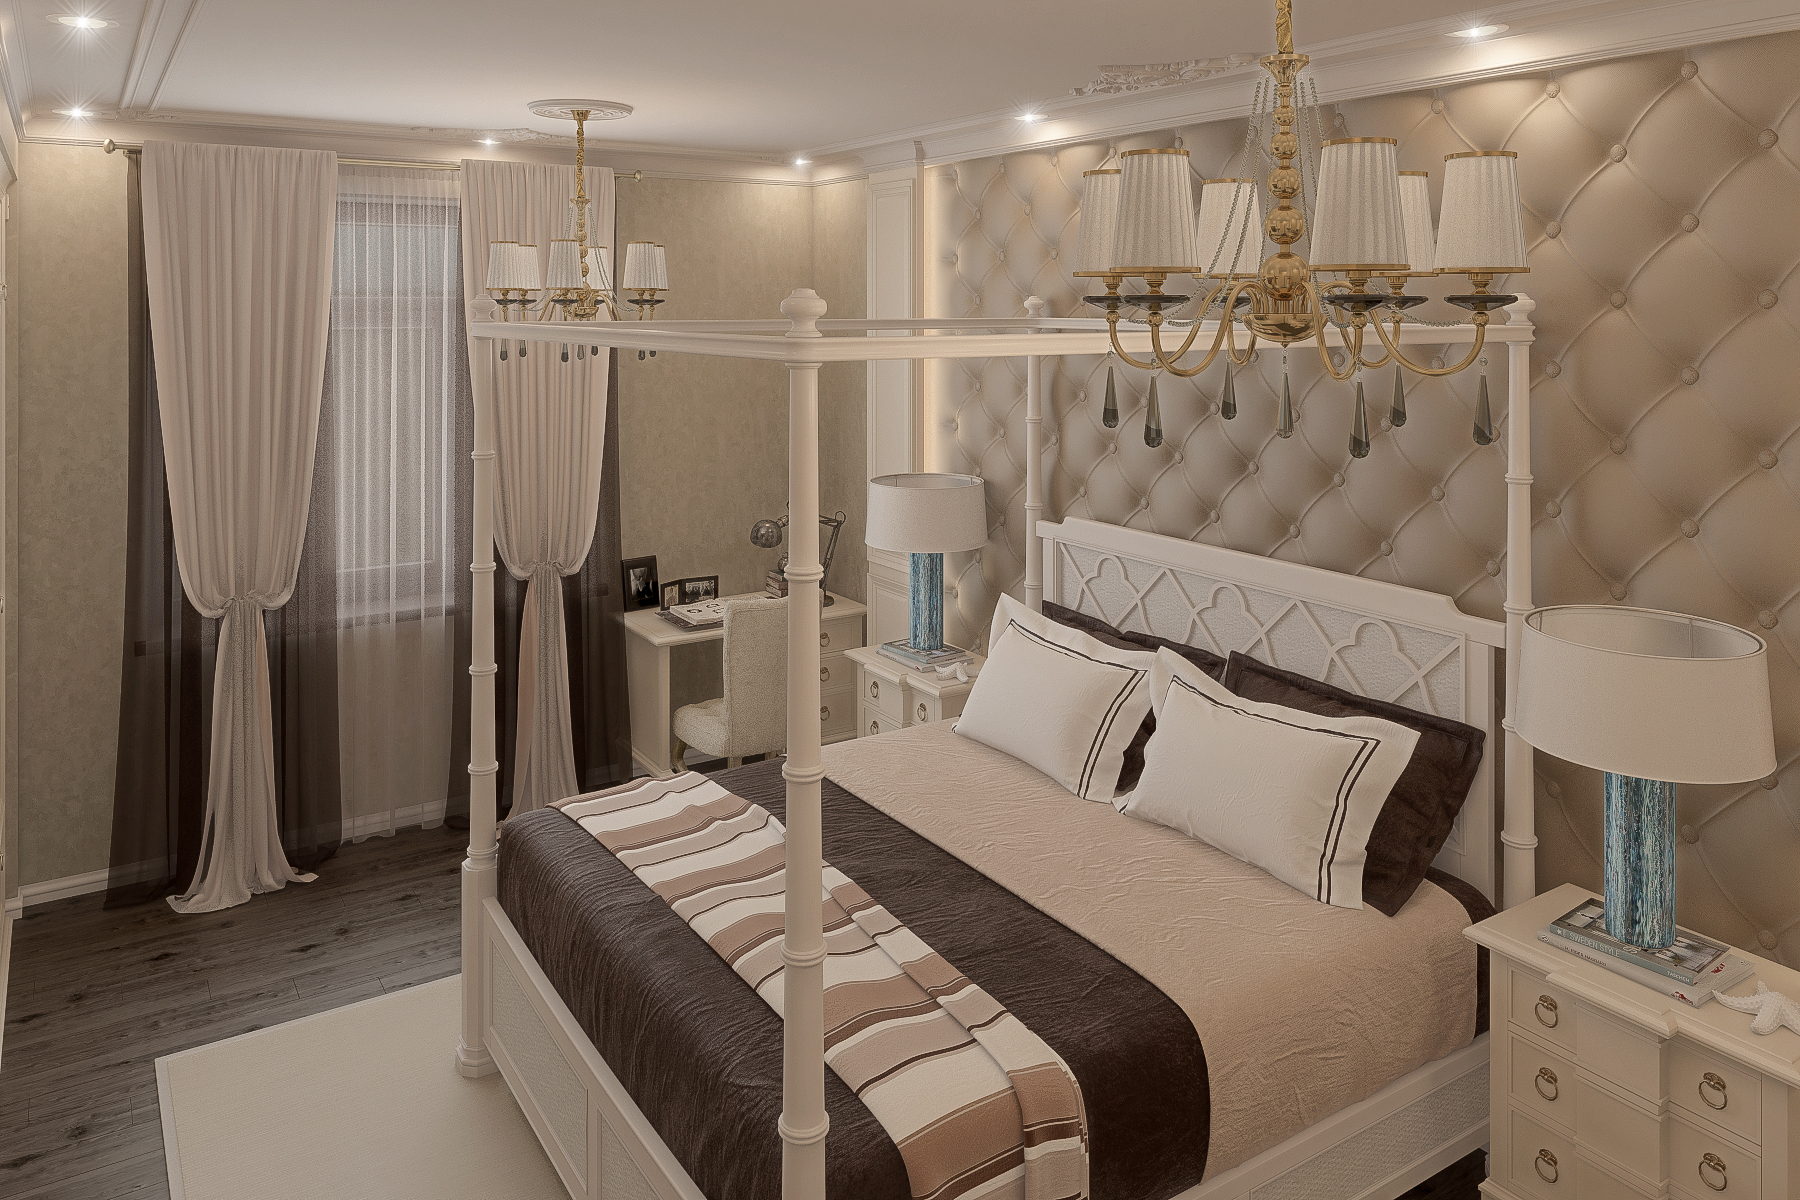 Sleeping in 3d max vray 3.0 image